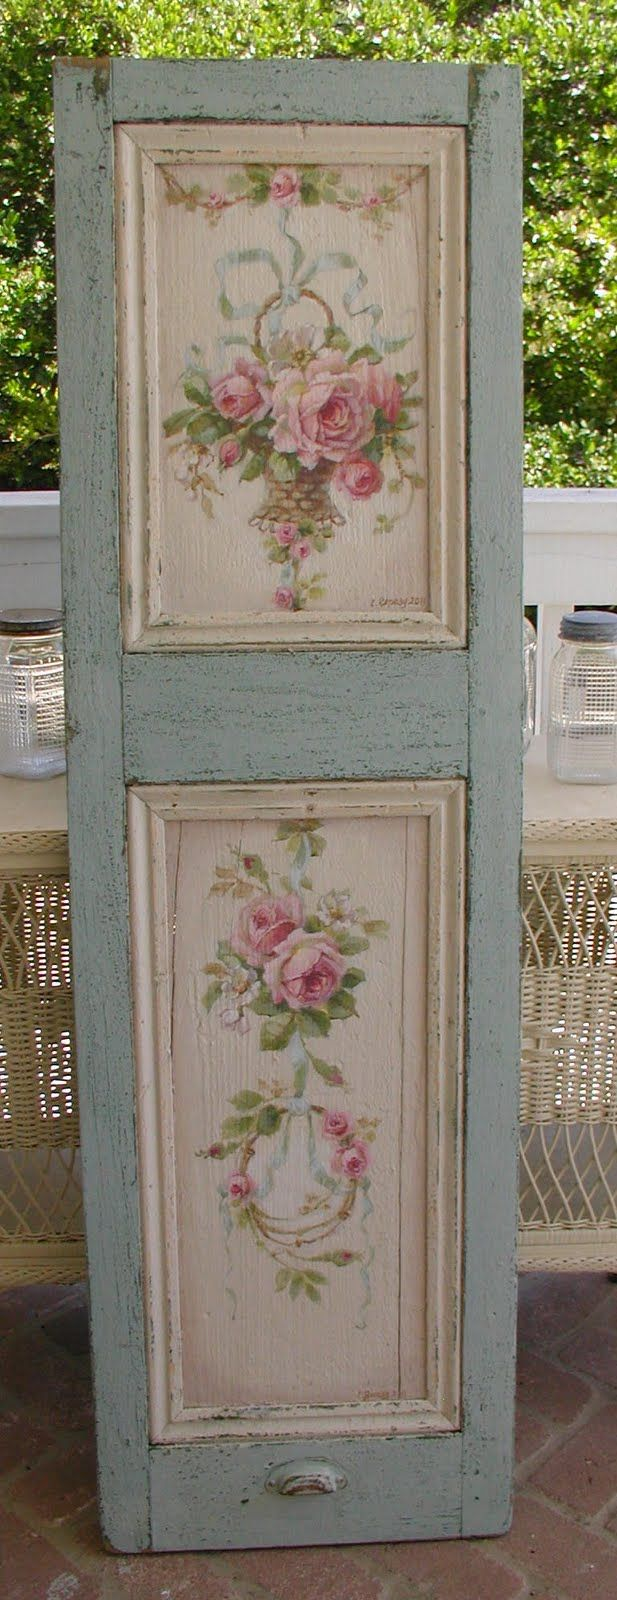 Painted furniture ideas shabby chic - How Would You Incorporate It Into Your Shabby Chic Decor